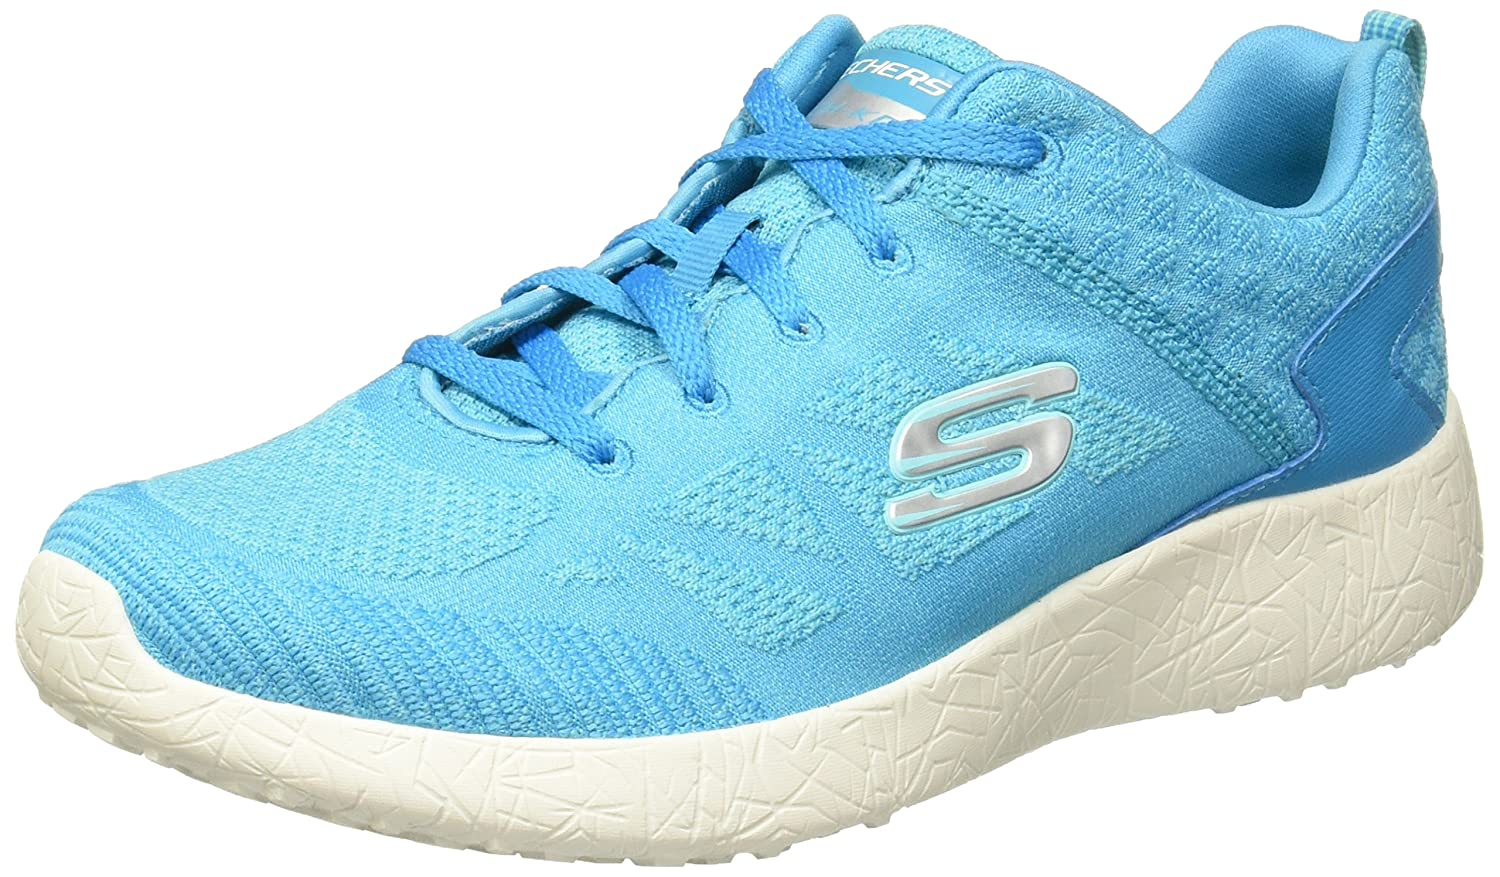 Skechers Sport Women's Burst Fashion Sneaker B01GET7BZM 7.5 B(M) US|Blue